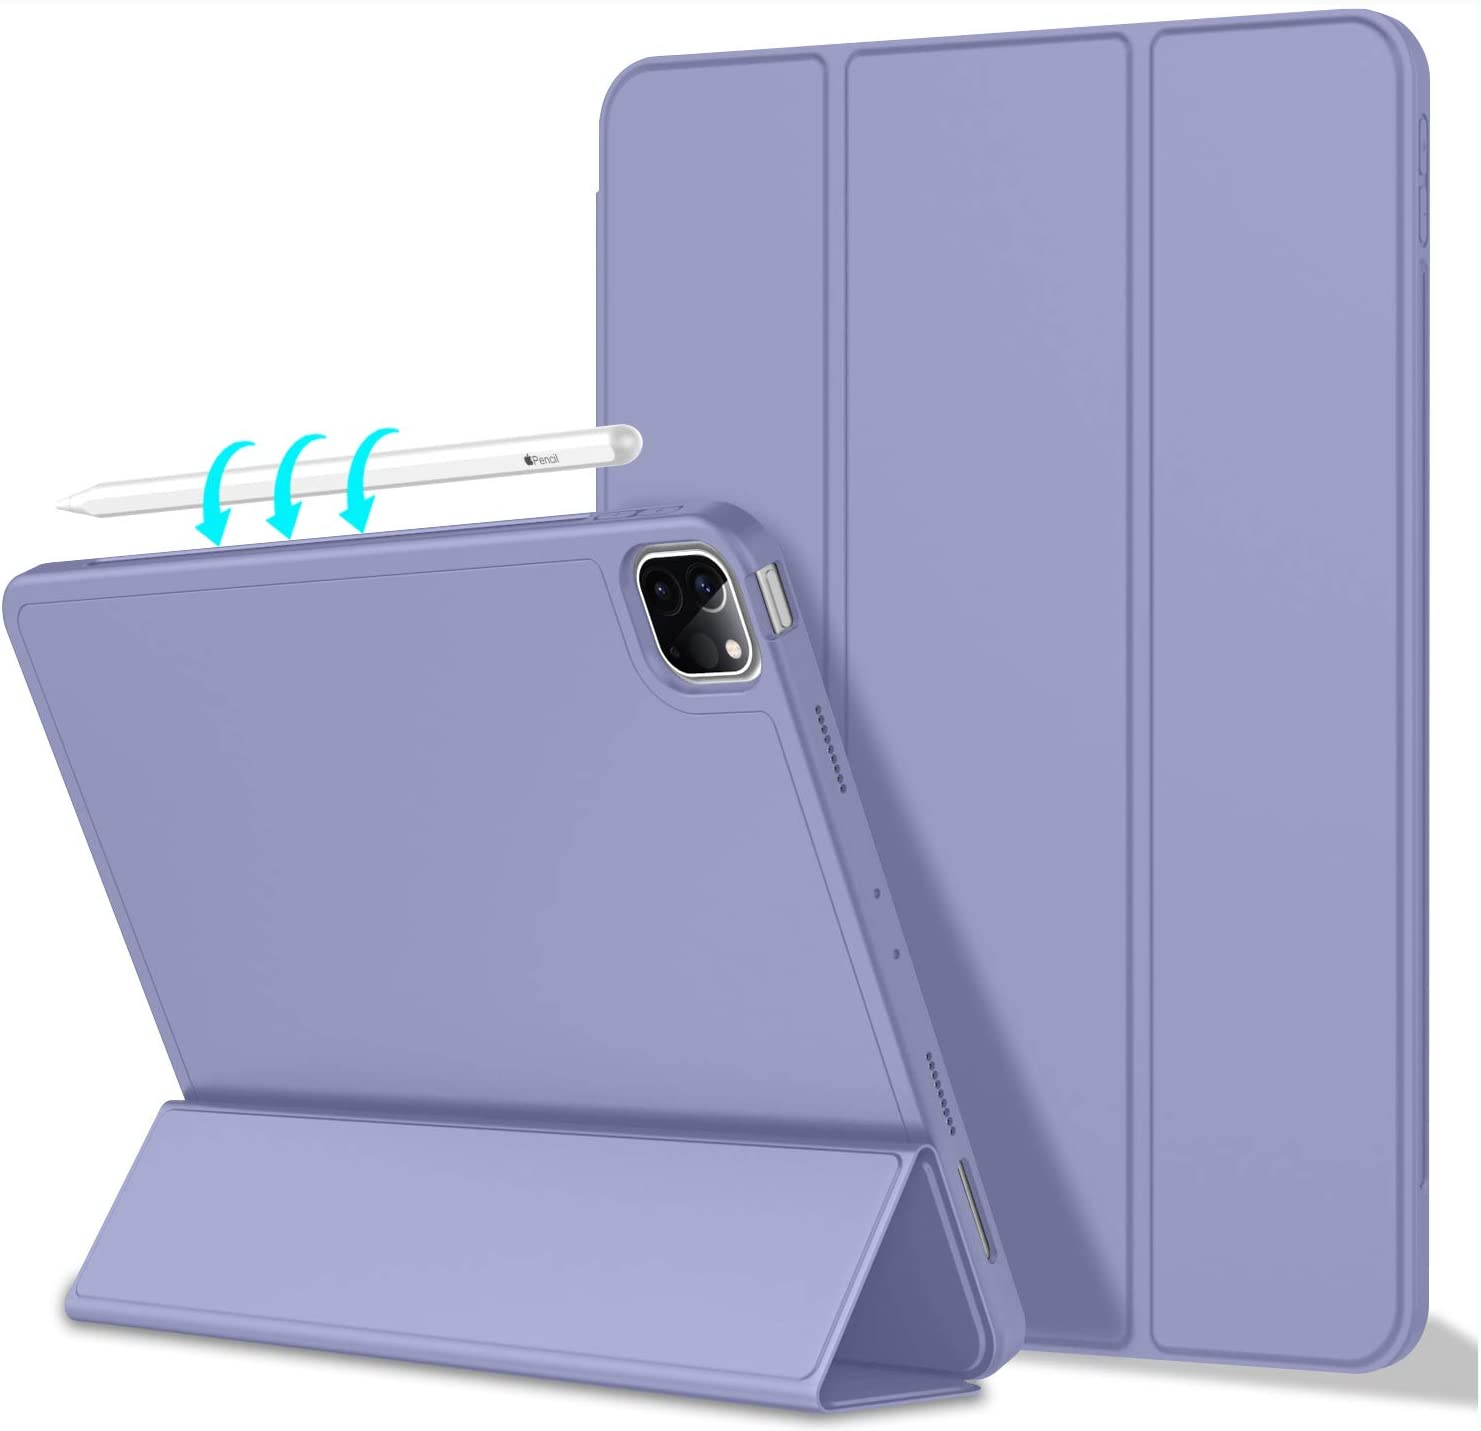 ToaPoia Case for iPad Pro 11 Inch Case 2021(3rd Gen) with Pencil Holder, Premium Protective Case Cover with Soft TPU Back and Auto Sleep/Wake Feature for 2021 iPad Pro 11(Purple)